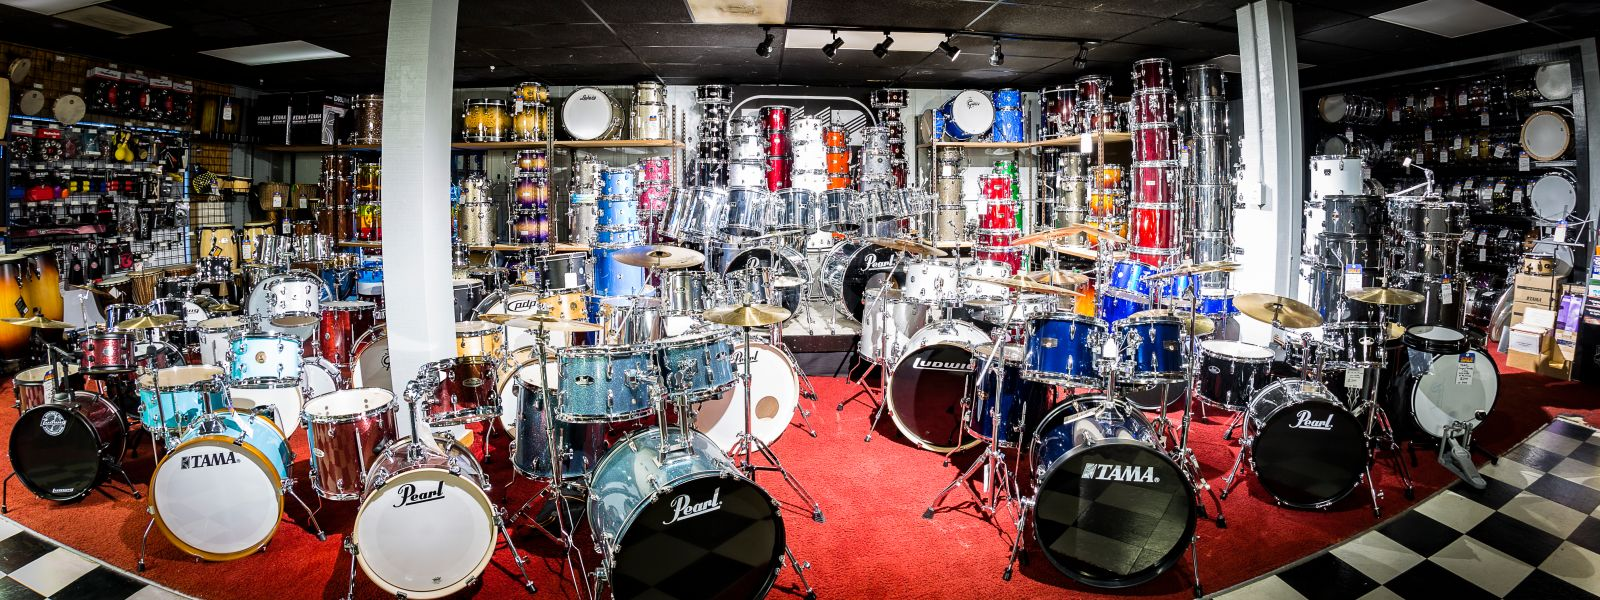 2112 Percussion Drum Shop Music Store Raleigh North Carolina